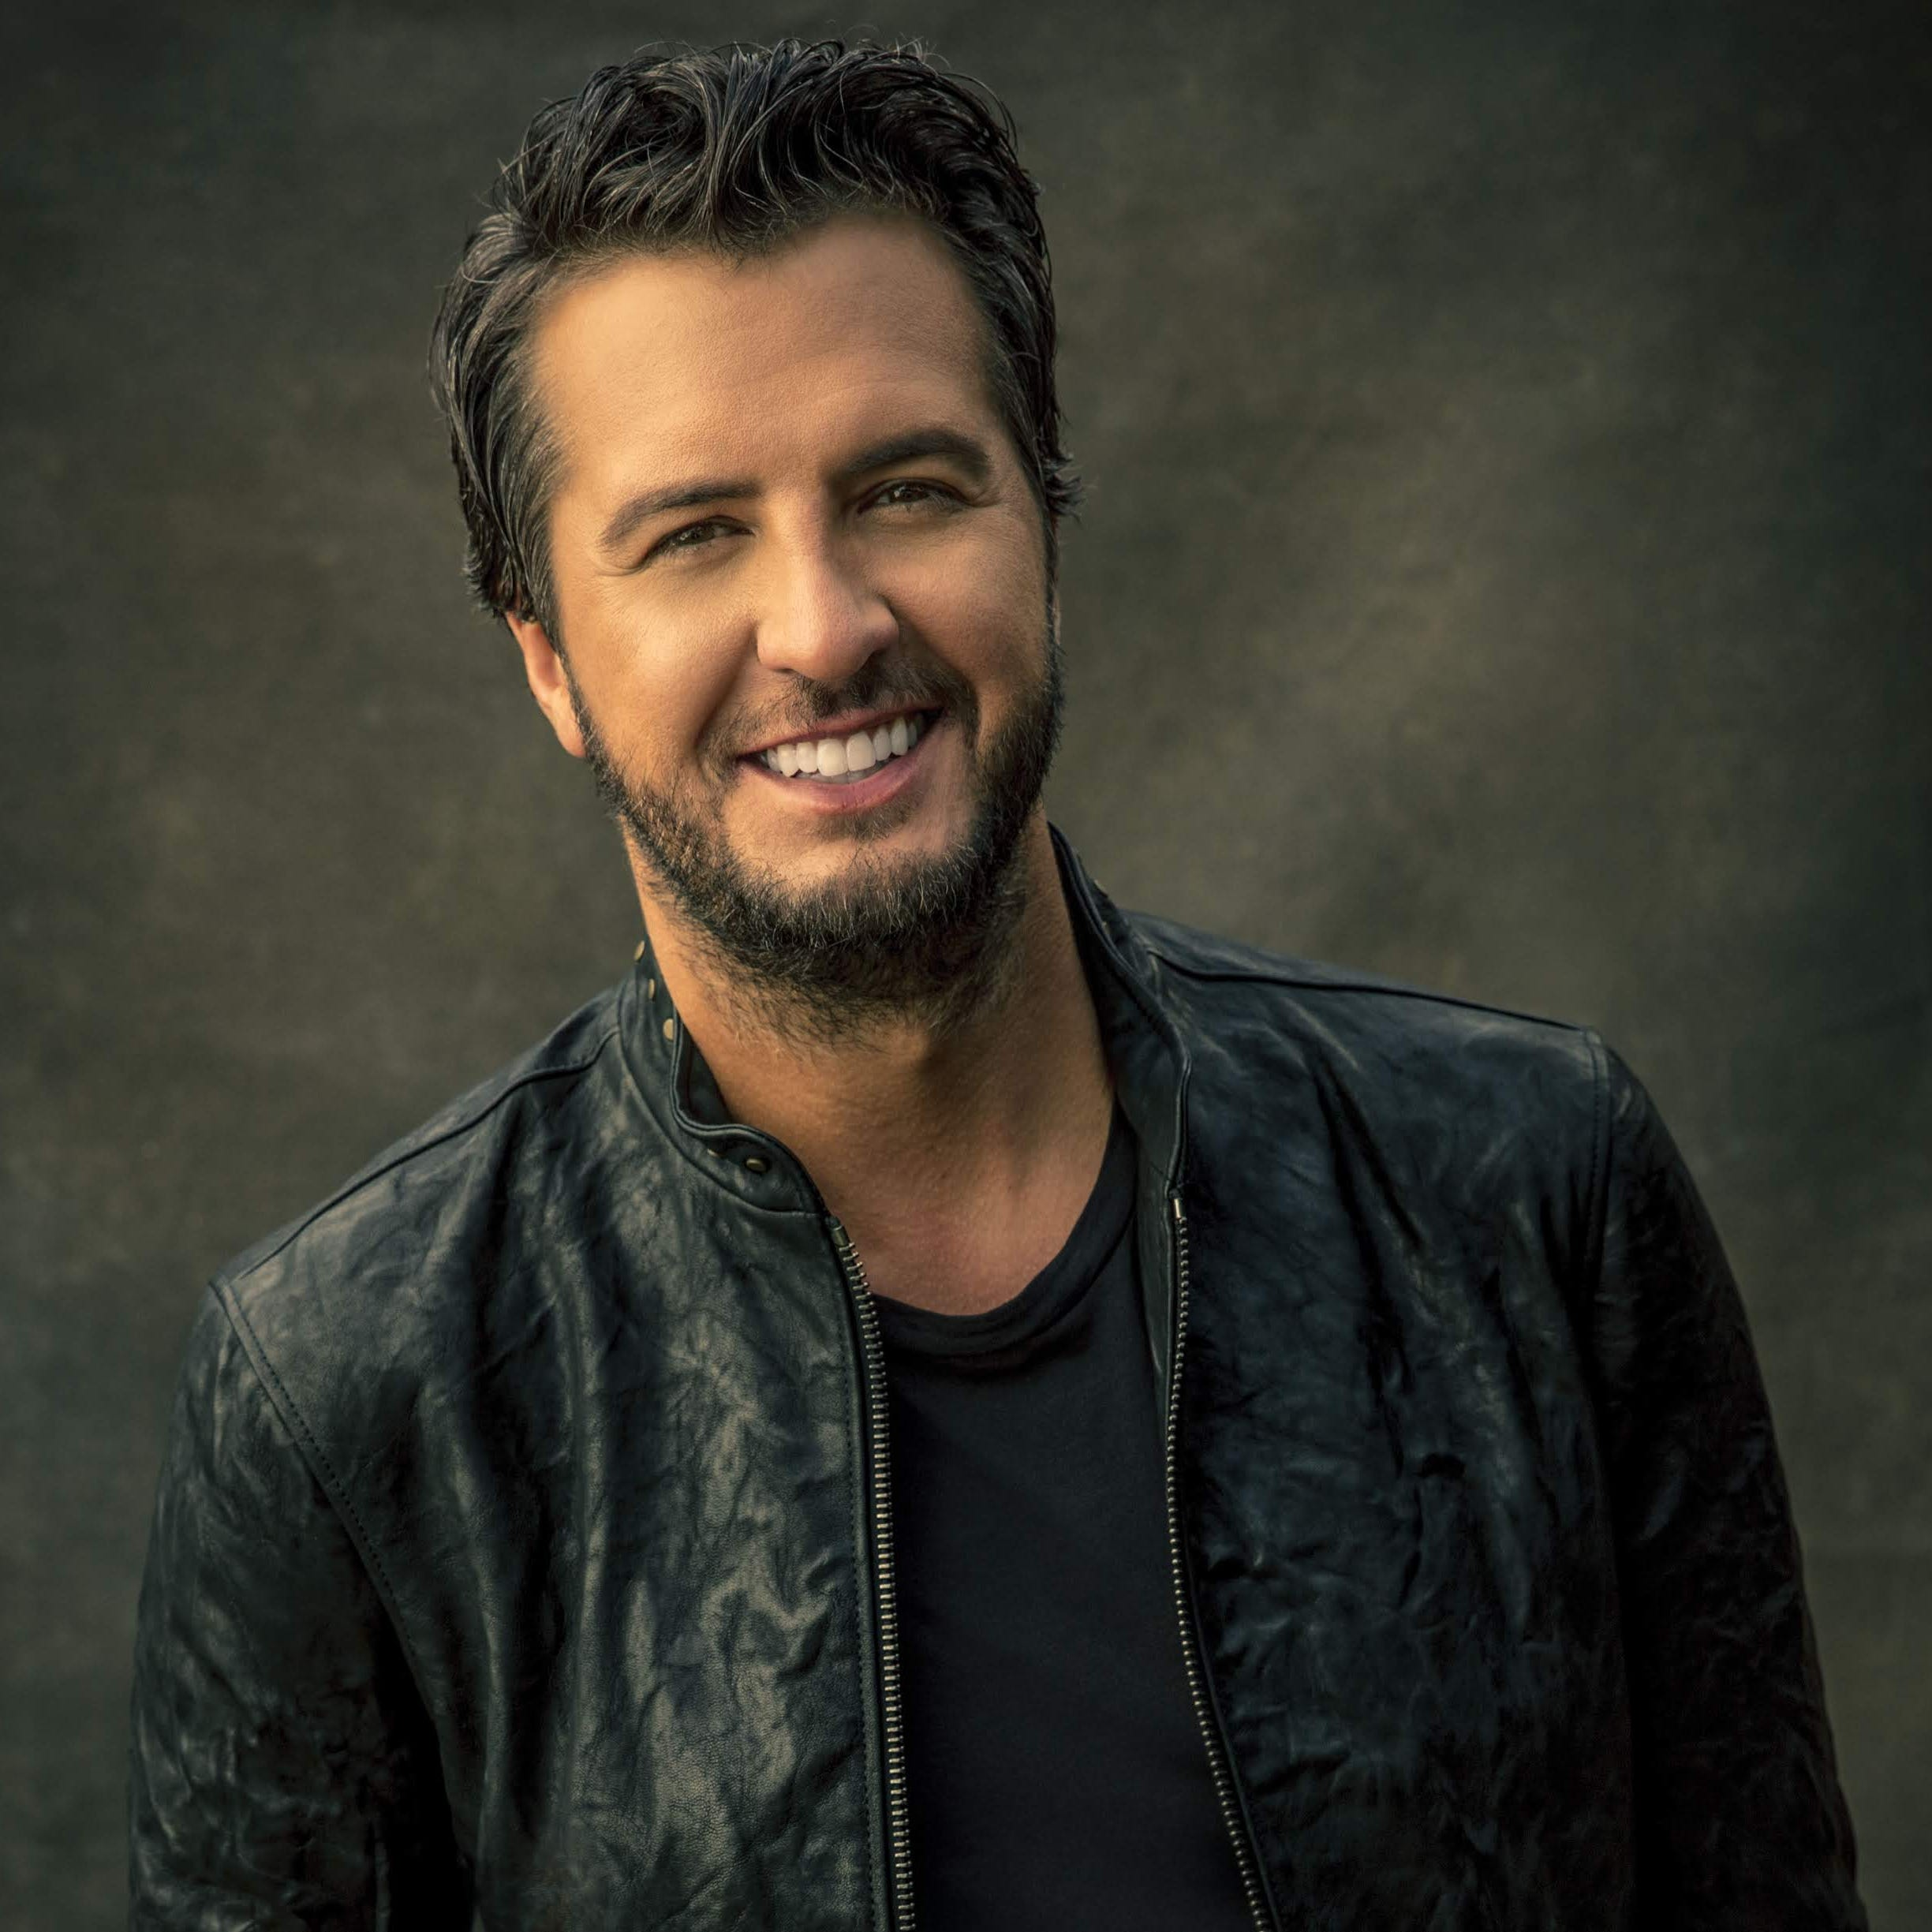 Luke Bryan, Thomas Rhett highlight 'Country Megaticket' roster at Ruoff